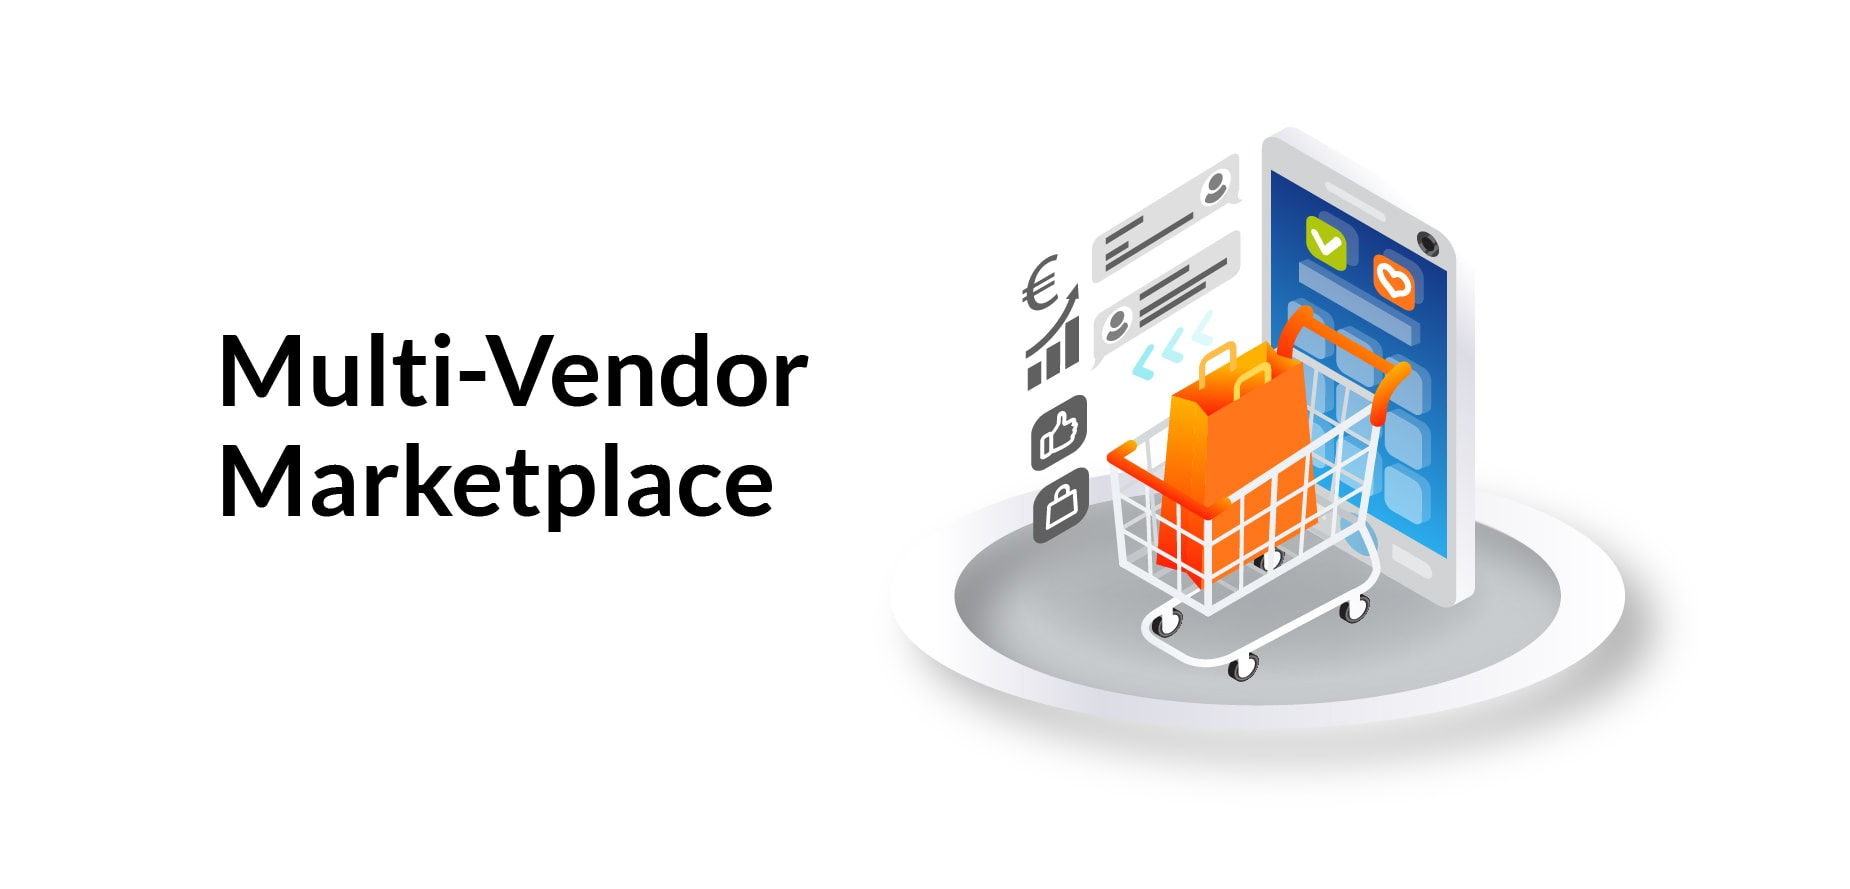 Multi-vendor marketplace